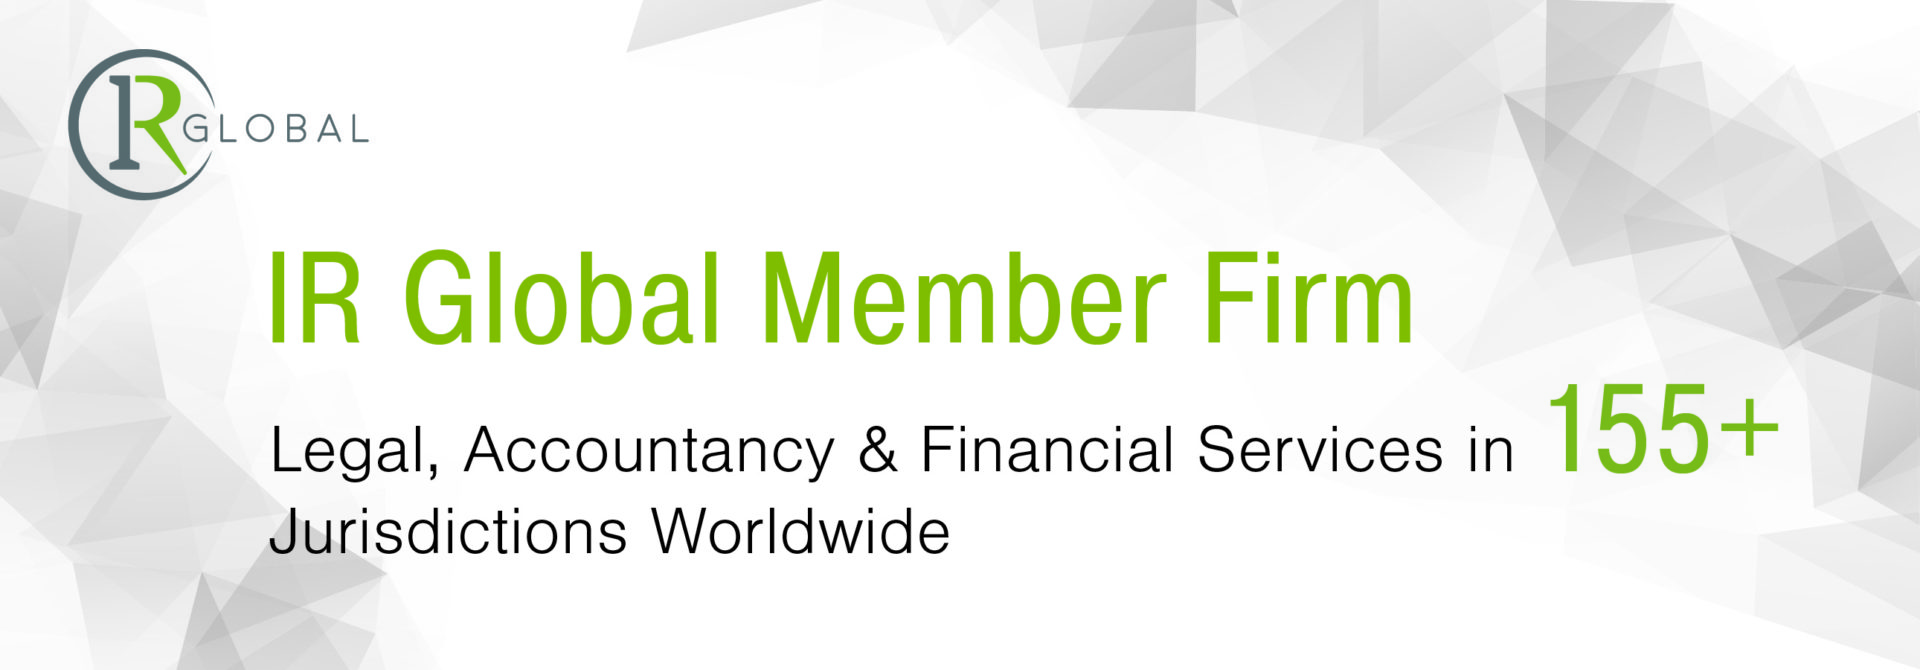 Mandanex Capital, IR Global's exclusive Business and Asset Valuations member in Australia